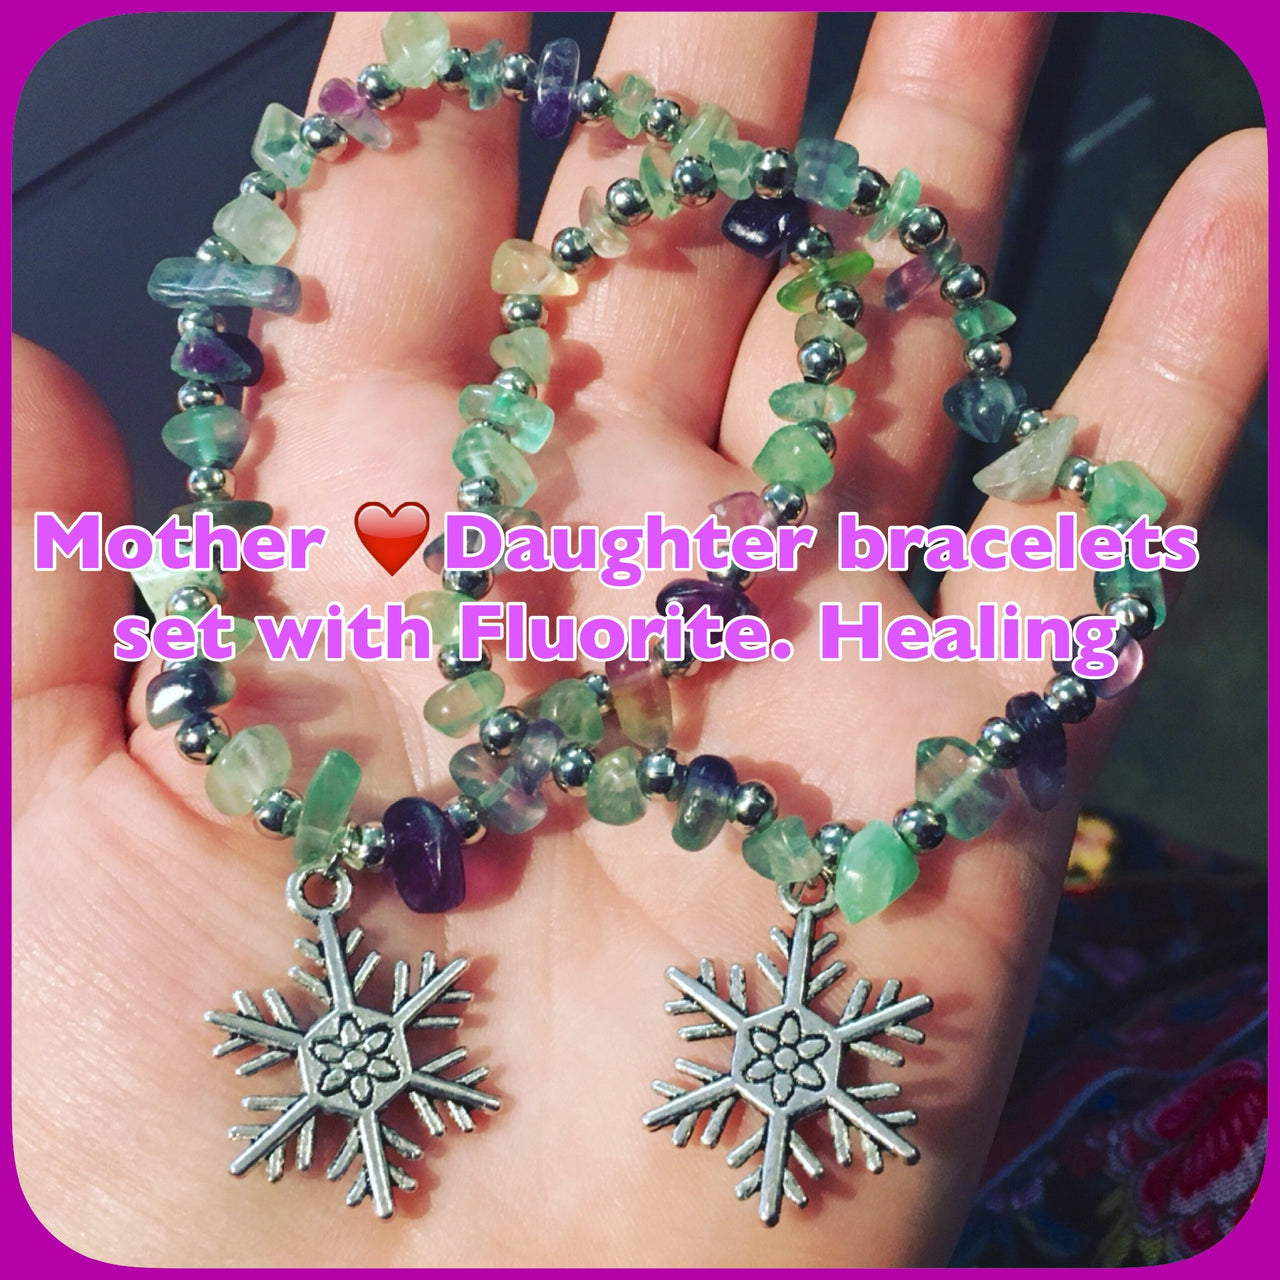 The BEST GIFT! Fluorite Mother and Daughter 2 sizes bracelets set